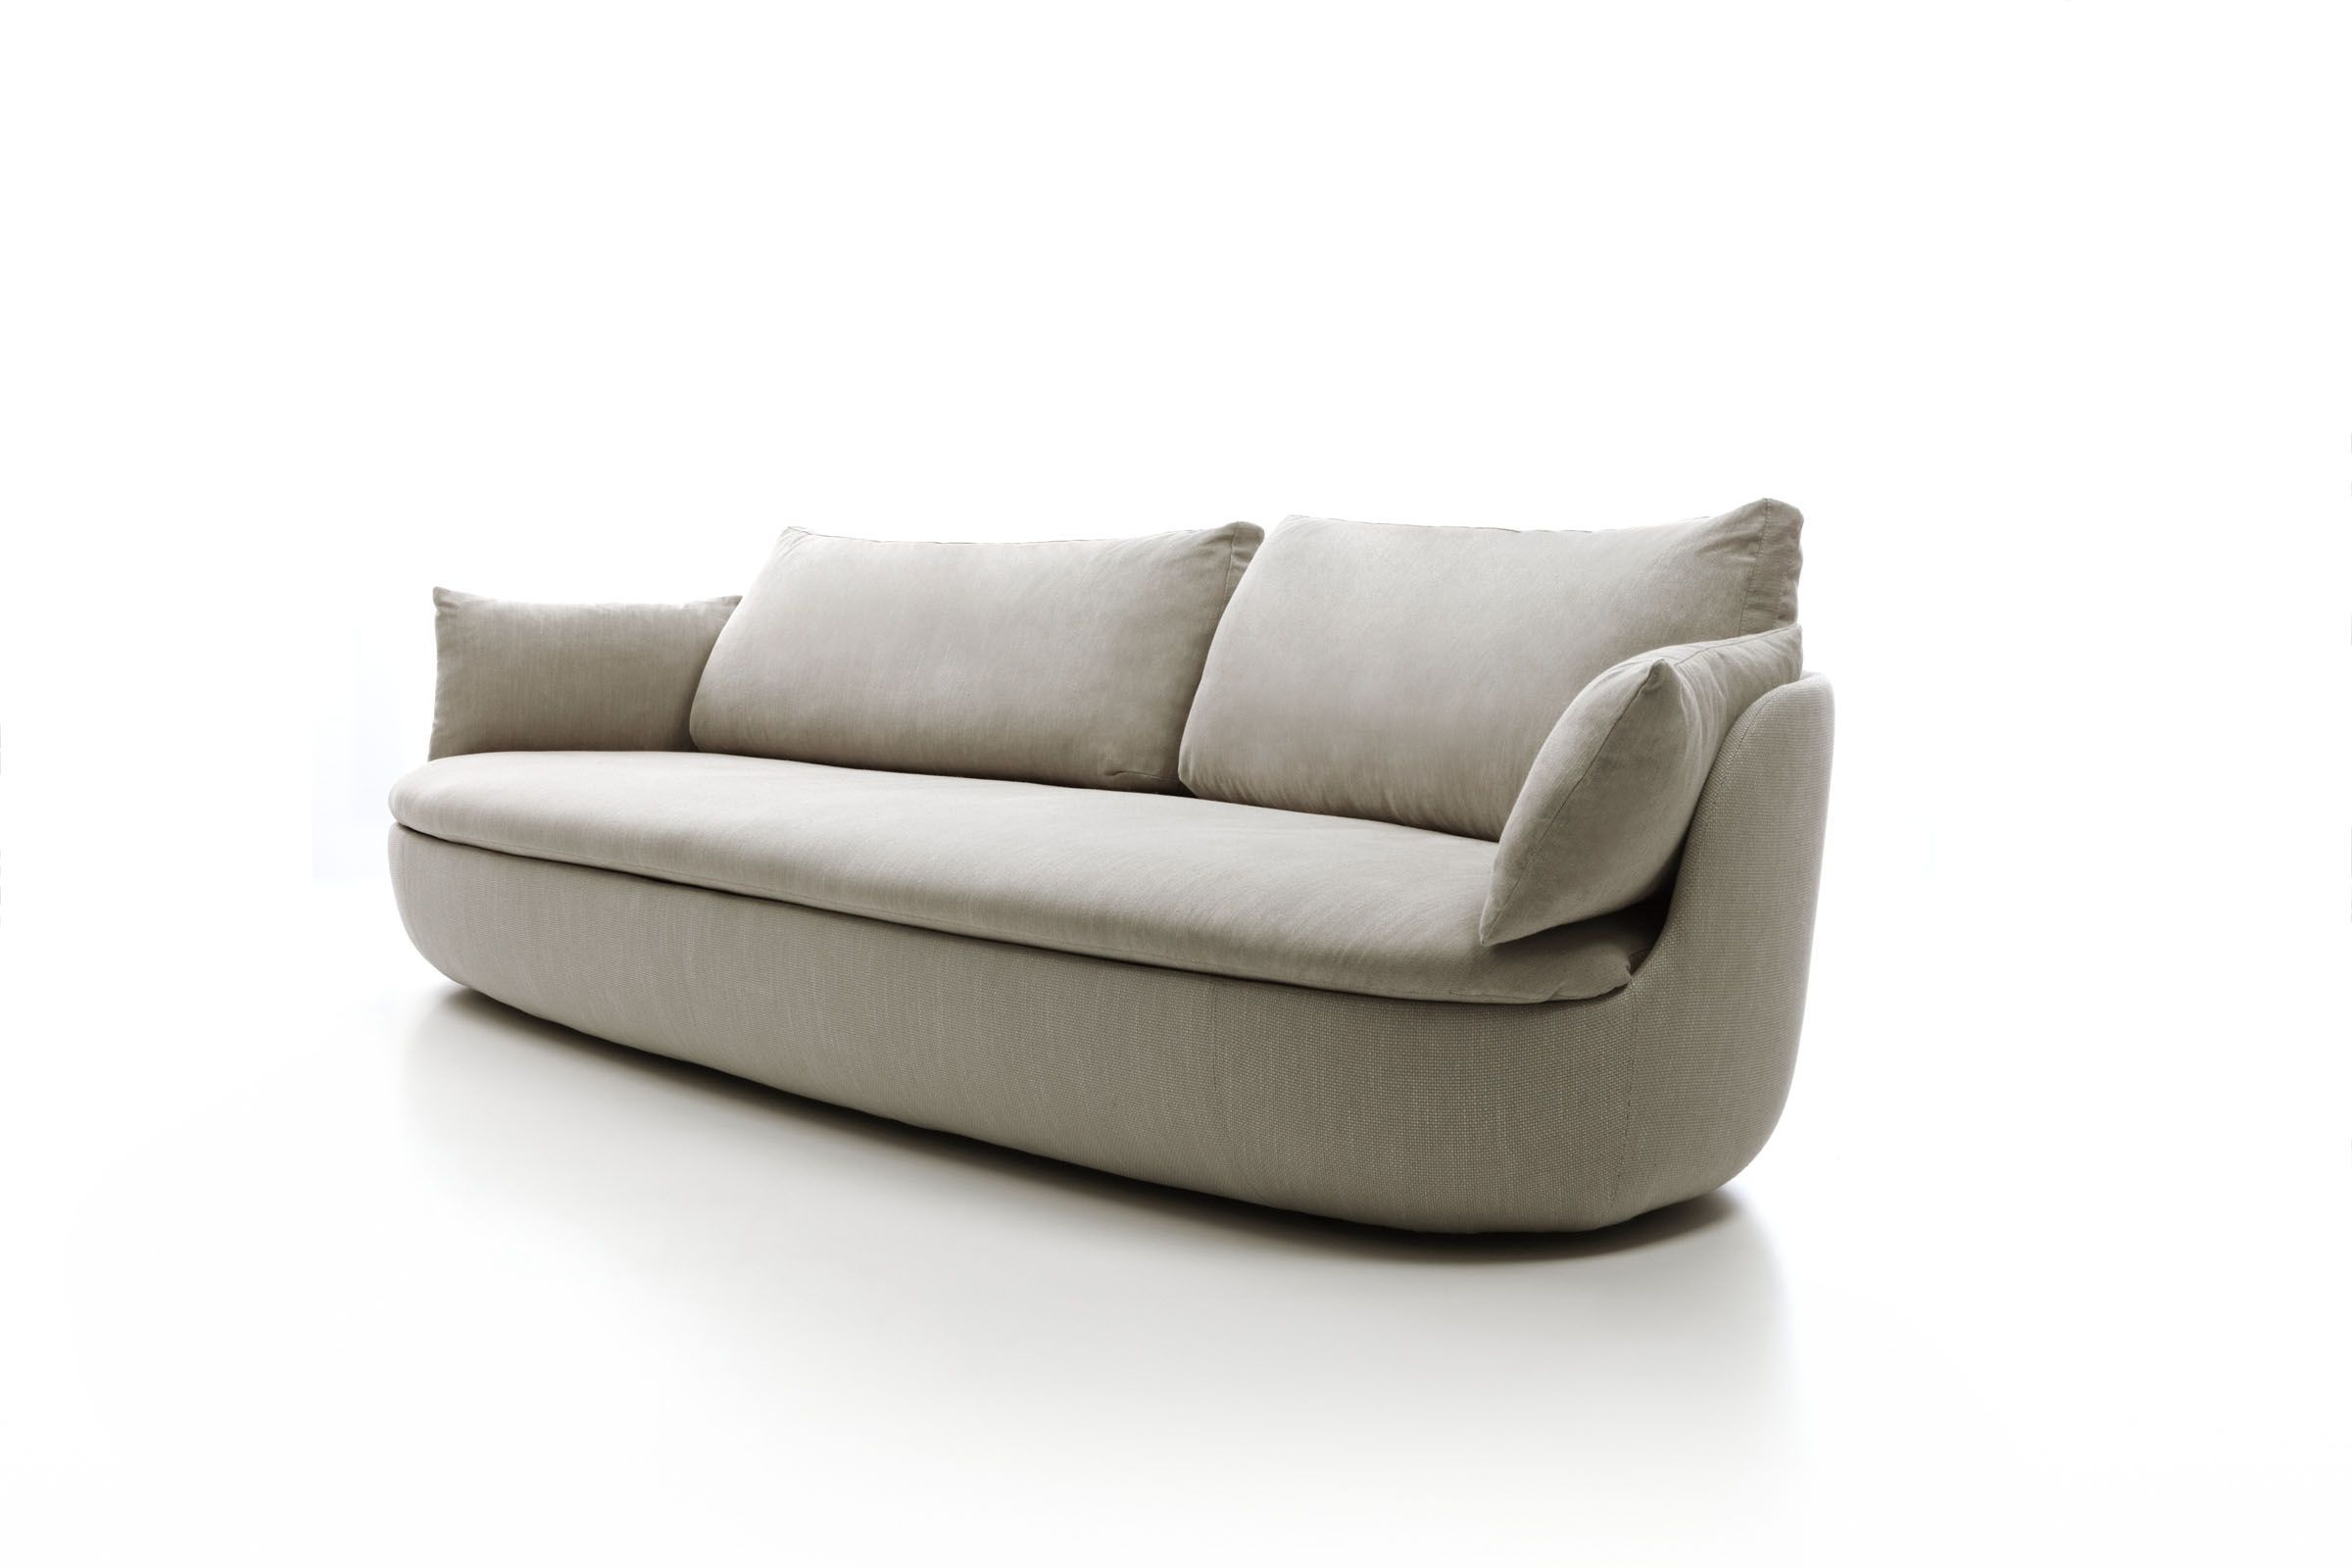 Sectional Sofas Bart XL Sofa by Moooi Works Bart Schilder for Moooi Sofa x x cm seat height cm